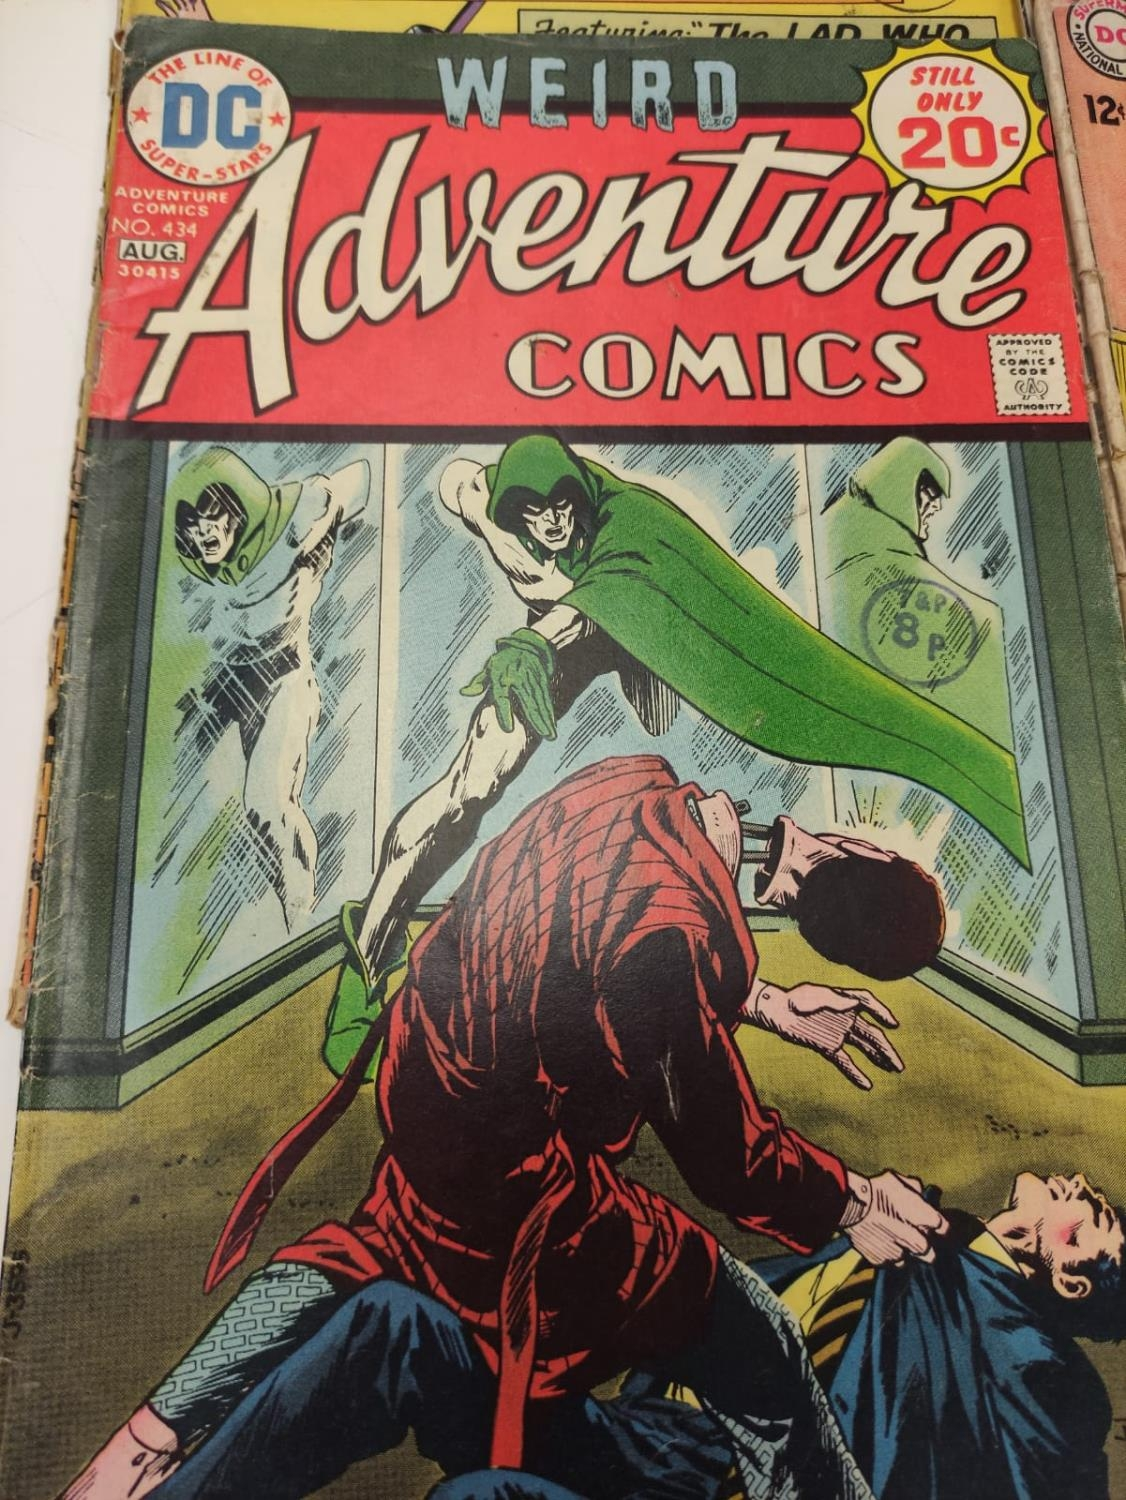 5 editions of DC Adventure Comics featuring Super-boy. - Image 9 of 19